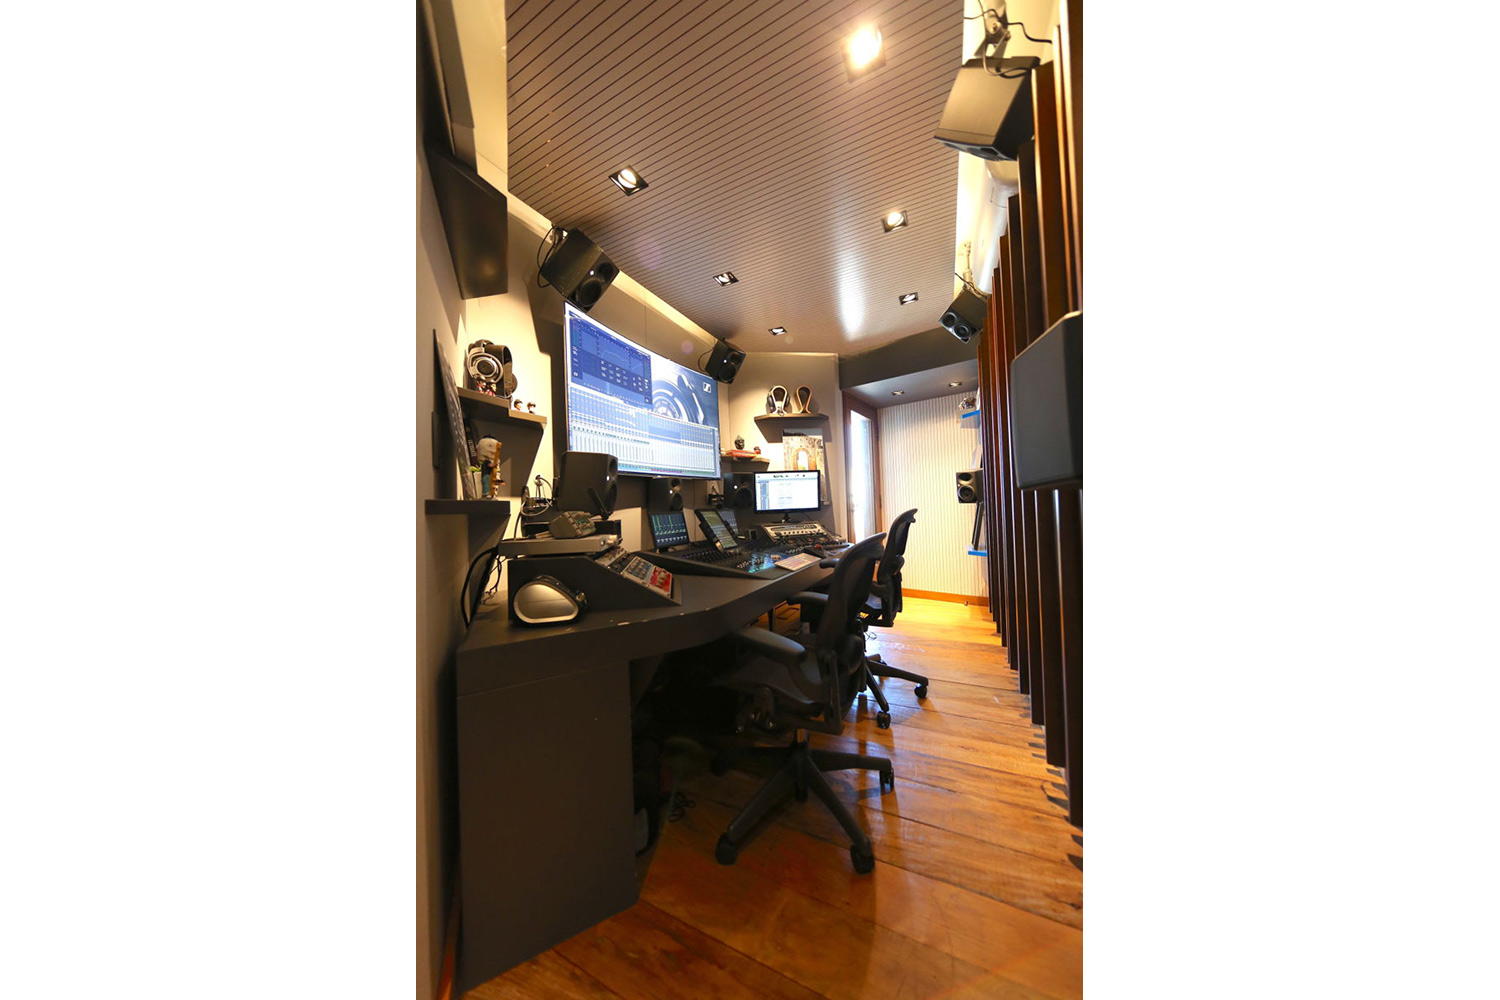 Mix2go is located in Sao Paulo, Brazil and is an innovative 3D mixing facility. WSDG was commissioned to design a space where 3D mixes audio could be created. Side photo.